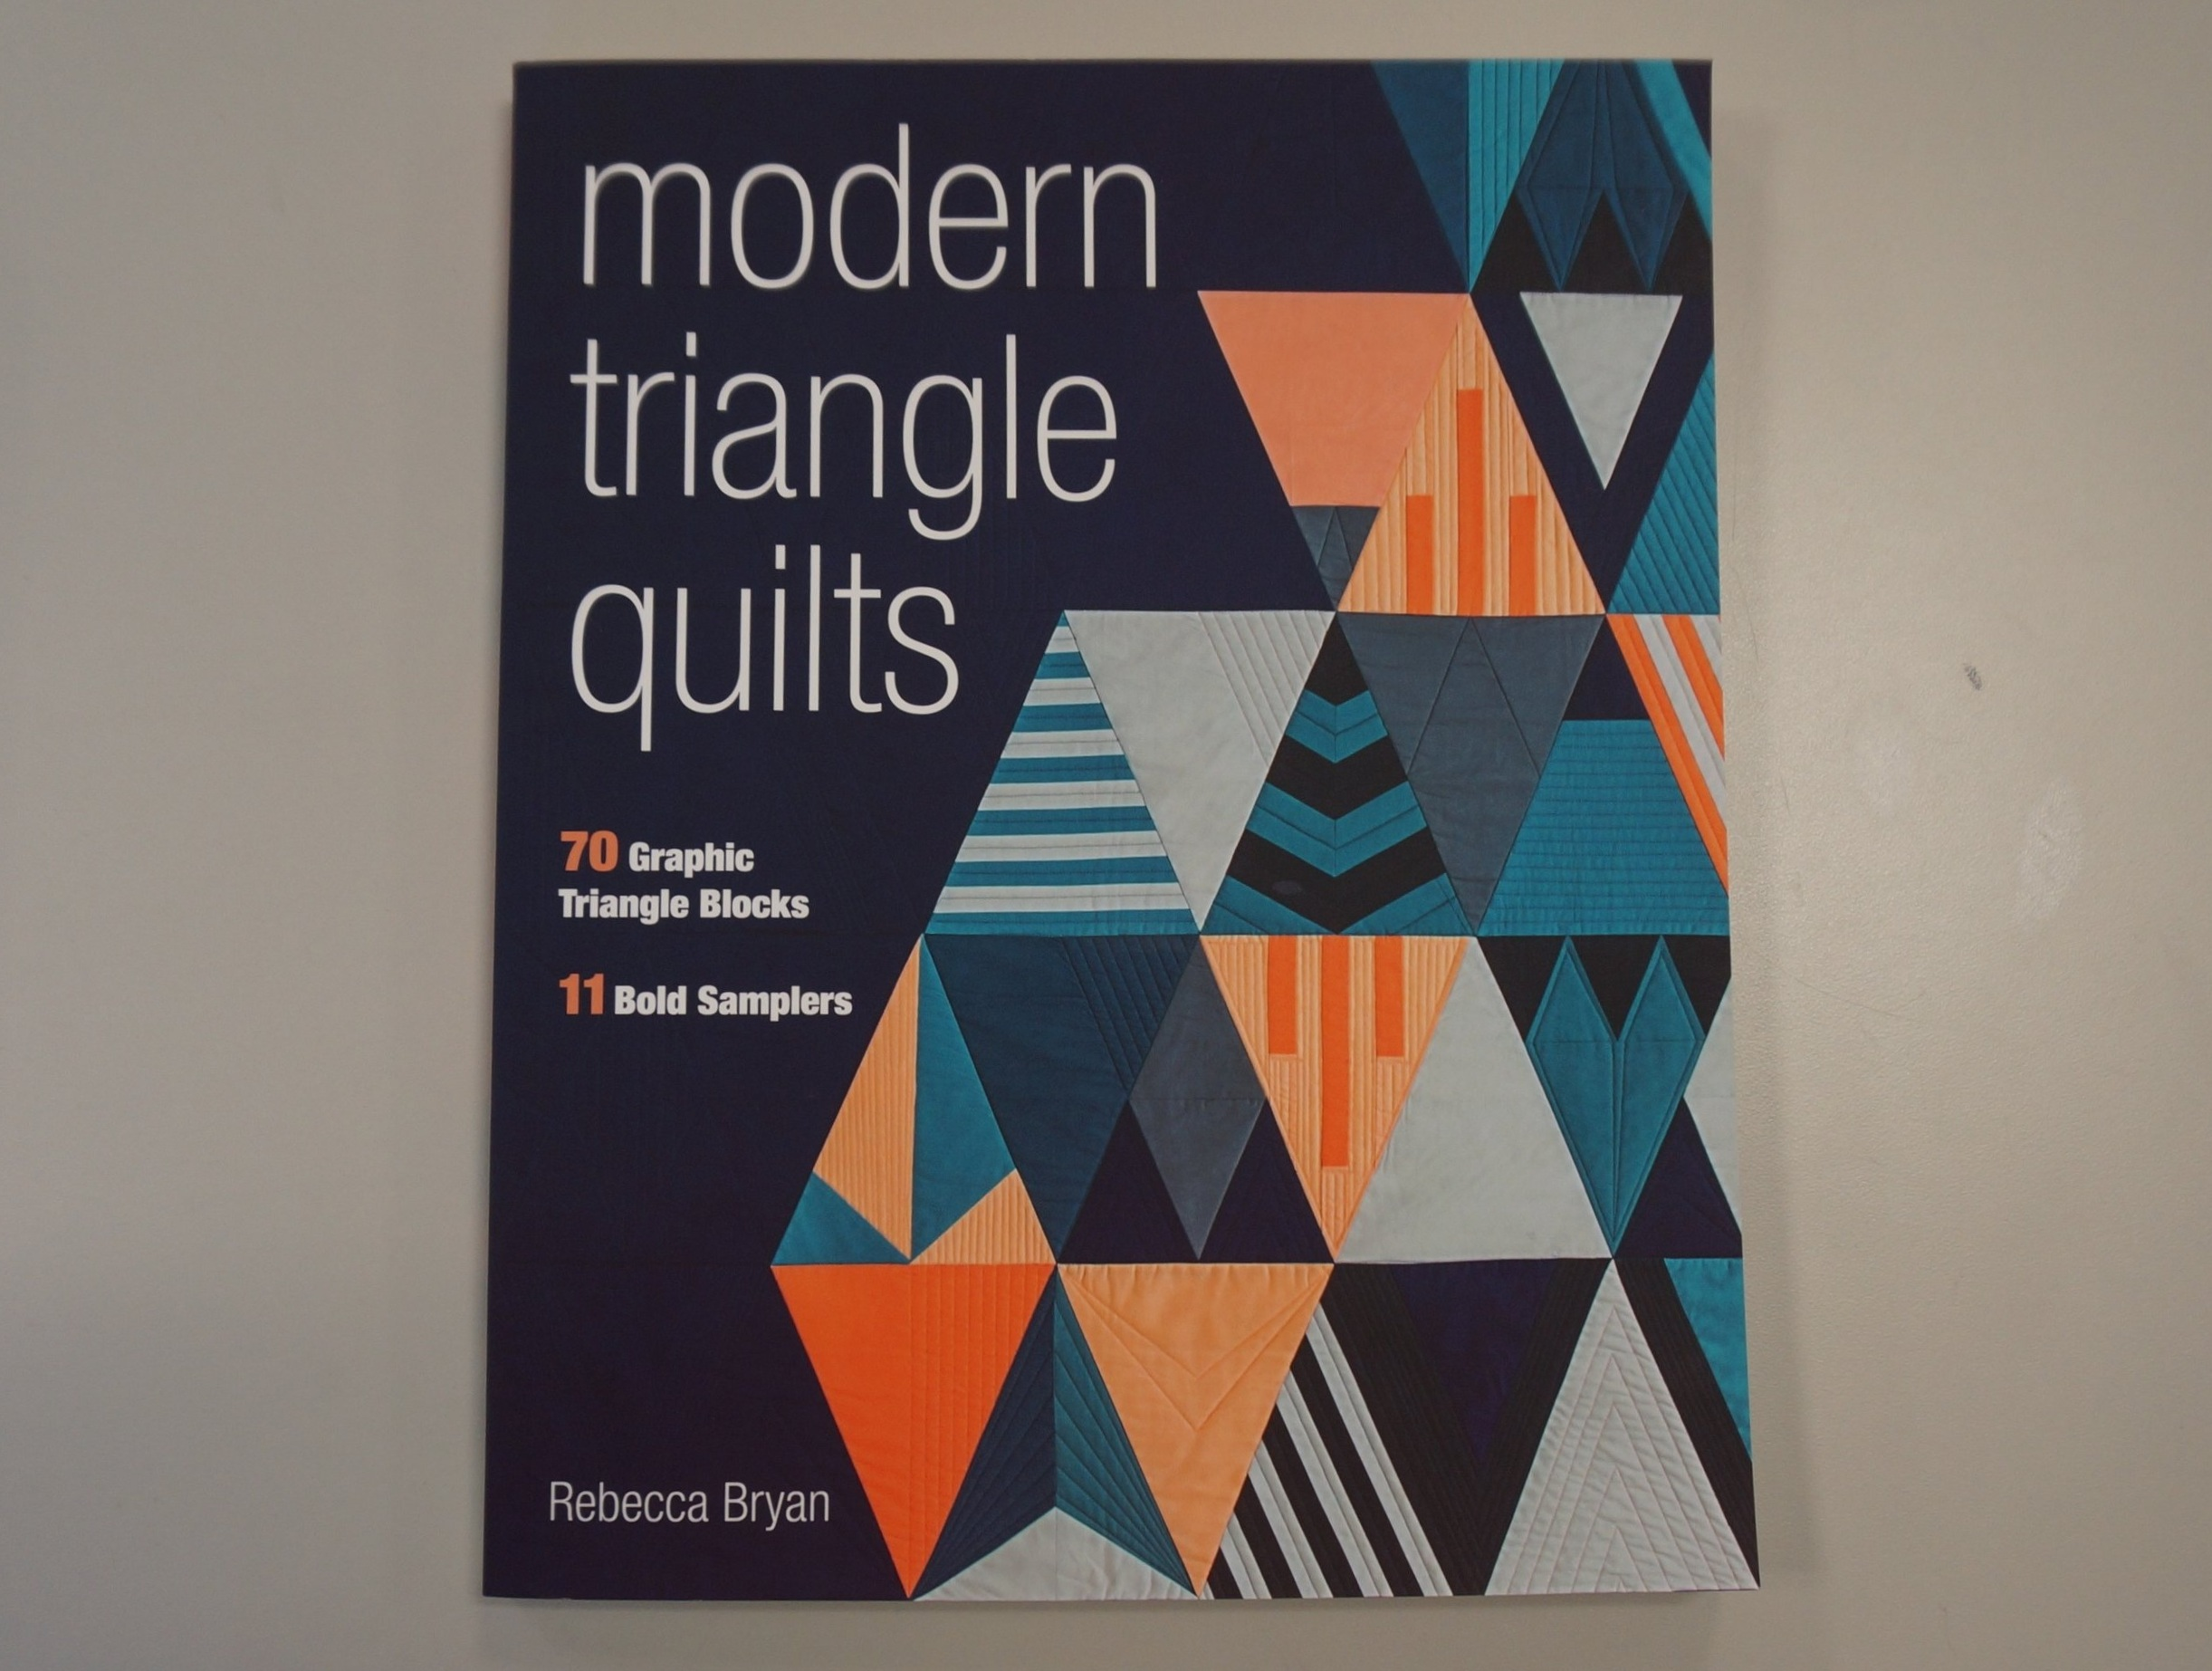 This book provides patterns and/or inspiration.